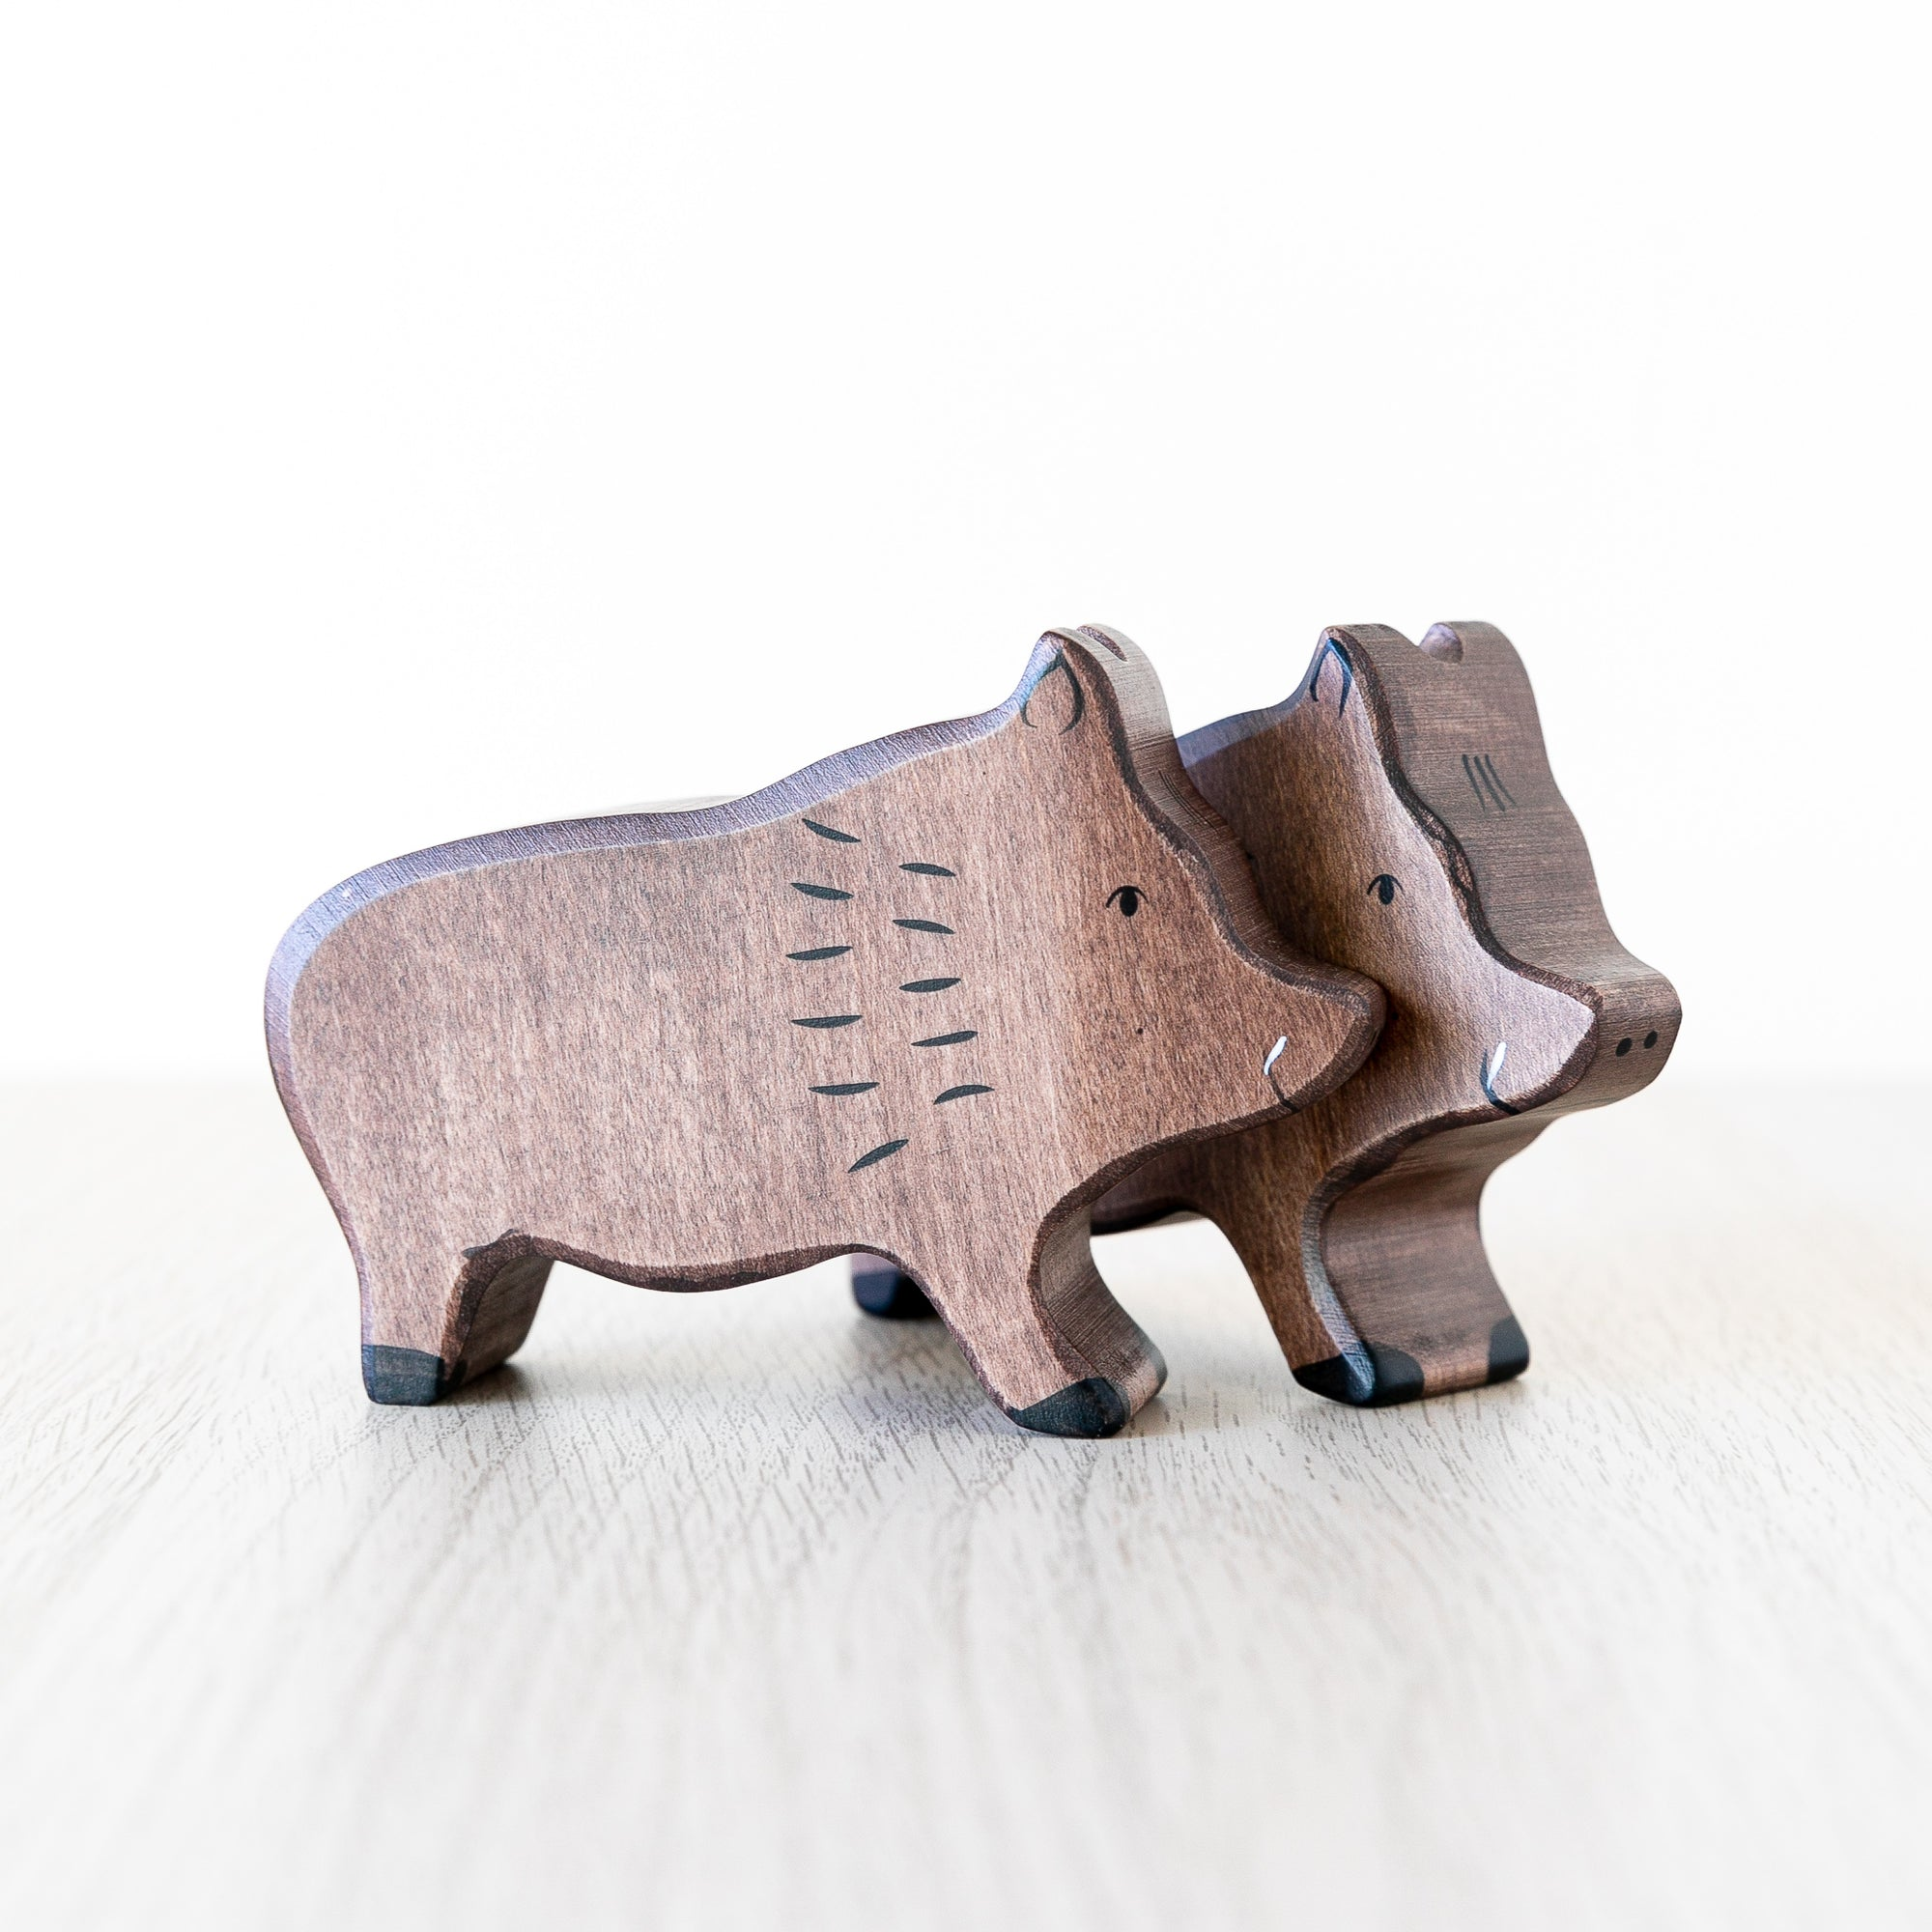 Holztiger Wooden Animal - Wild Boar